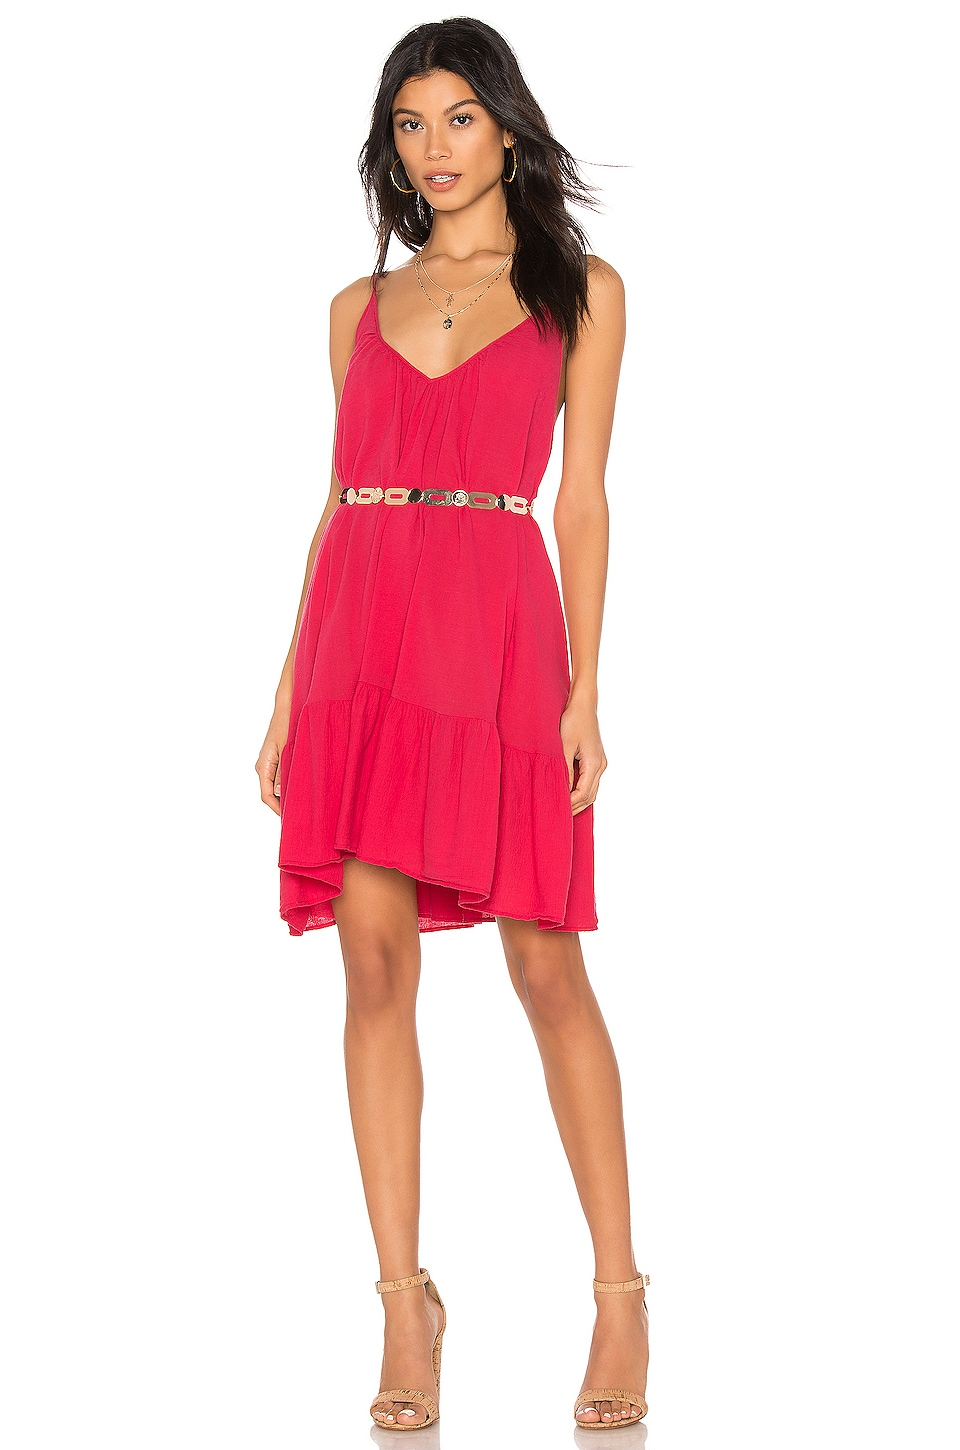 St Tropez Ruffle Mini Dress